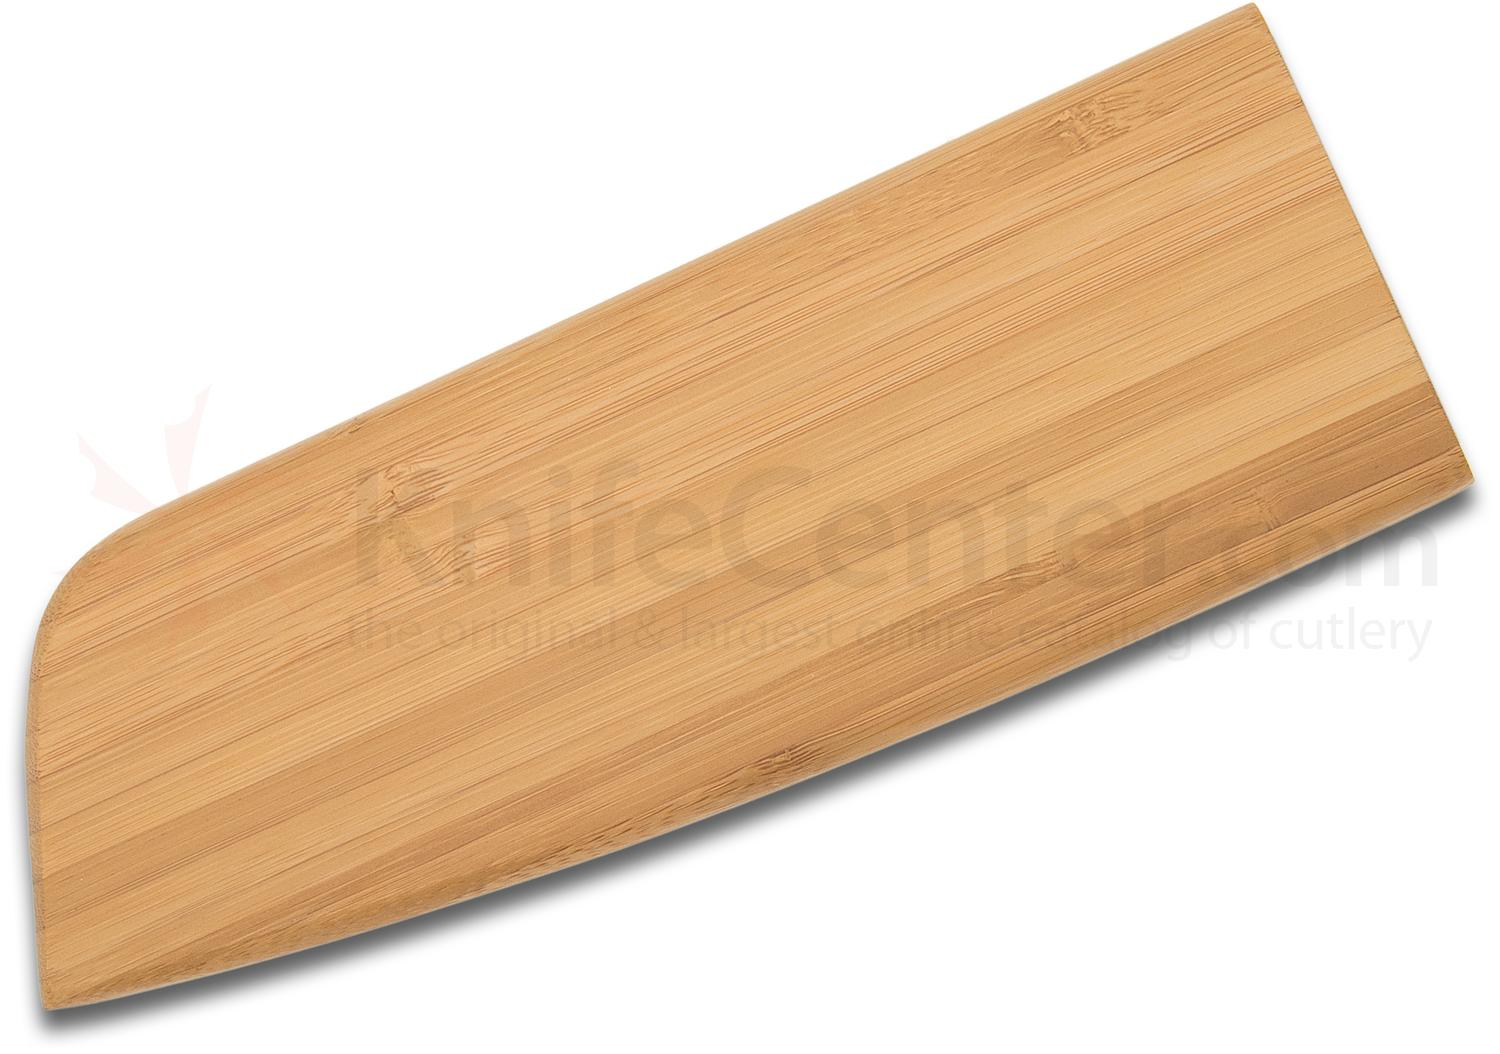 Apogee Culinary Designs Magnetic Bamboo Sheath Fits Most 7.5 inch Santoku Knives